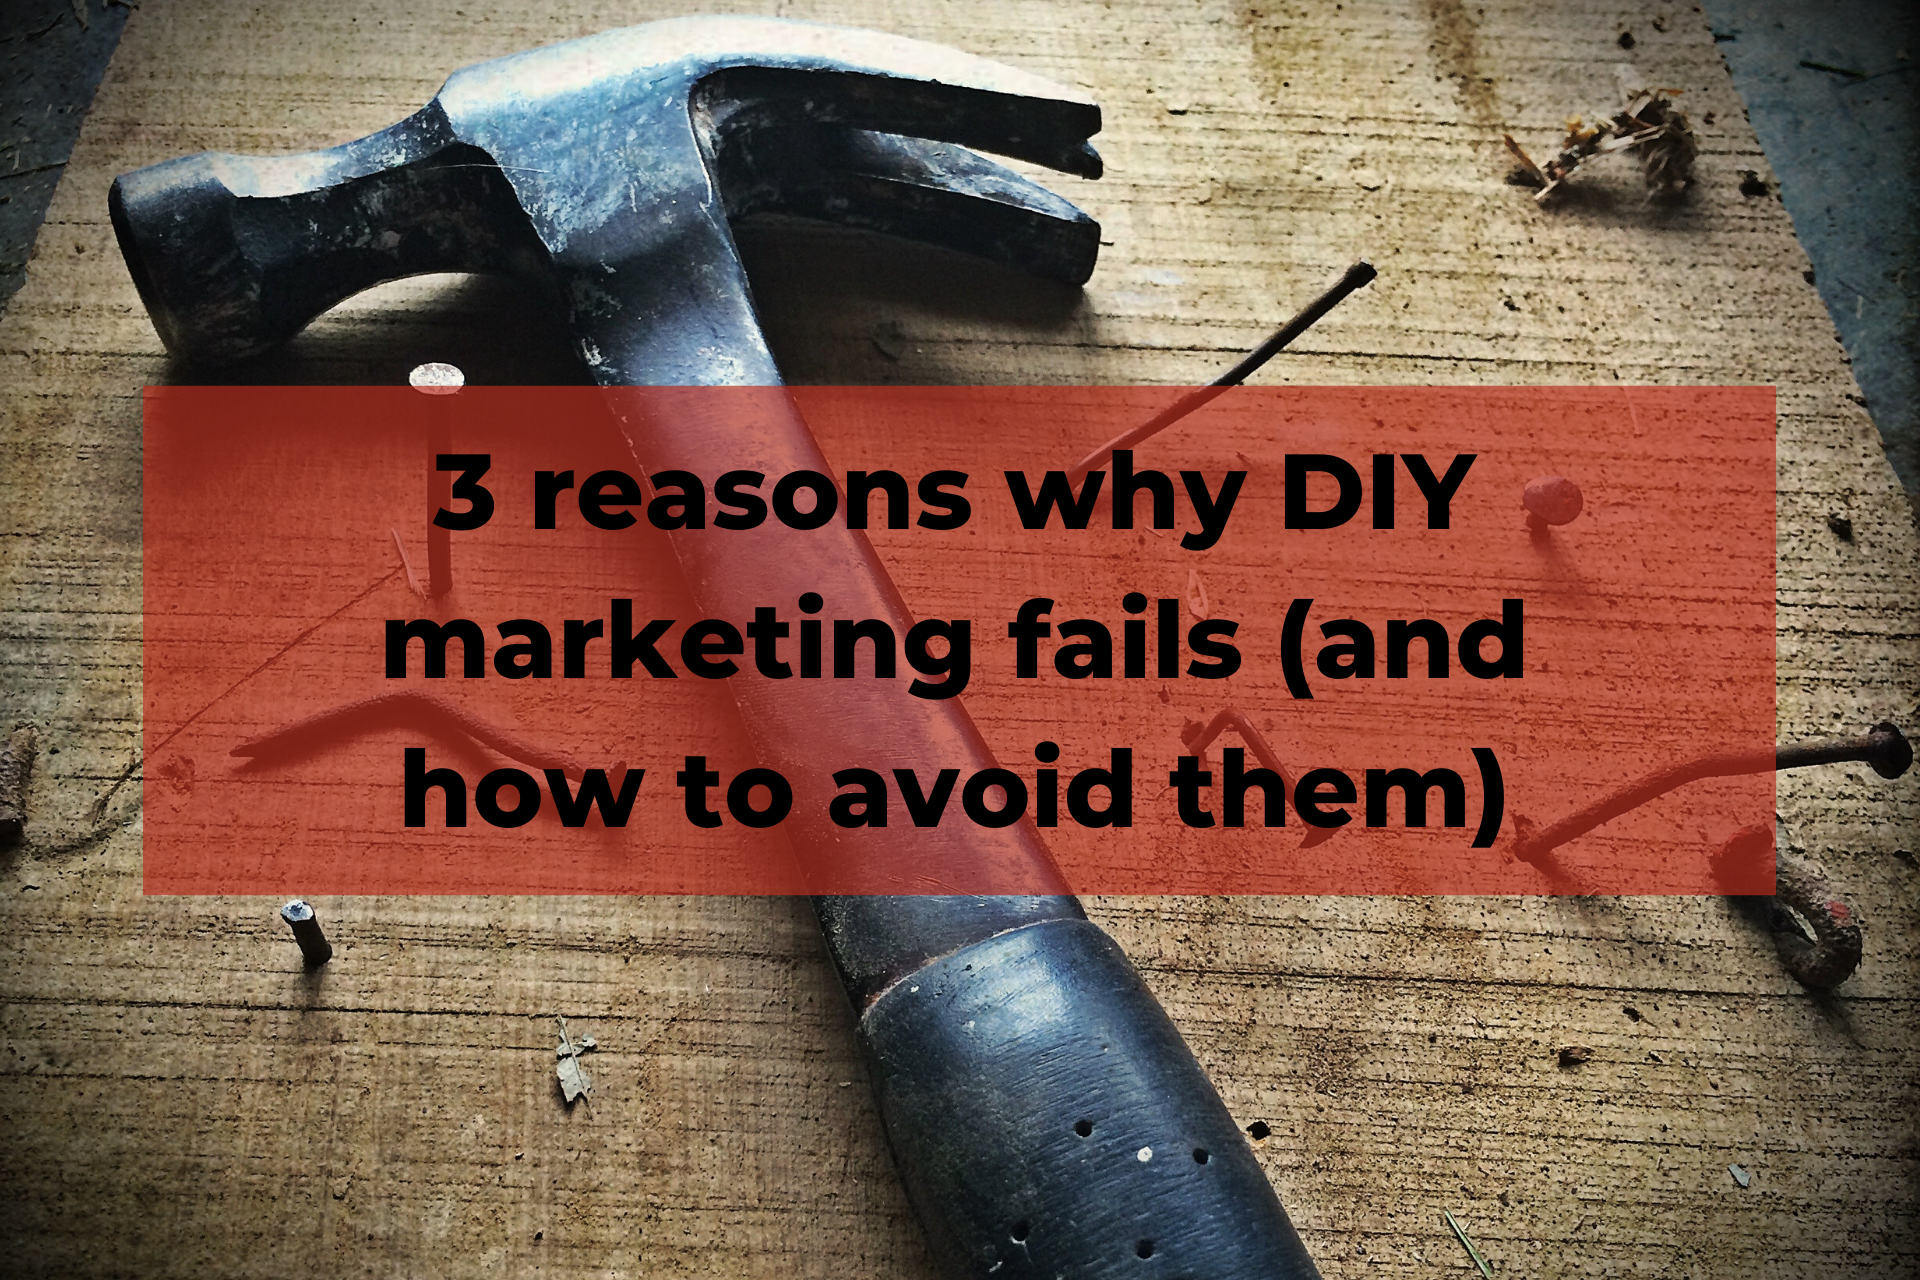 3 reasons why DIY marketing fails (and how to avoid them)